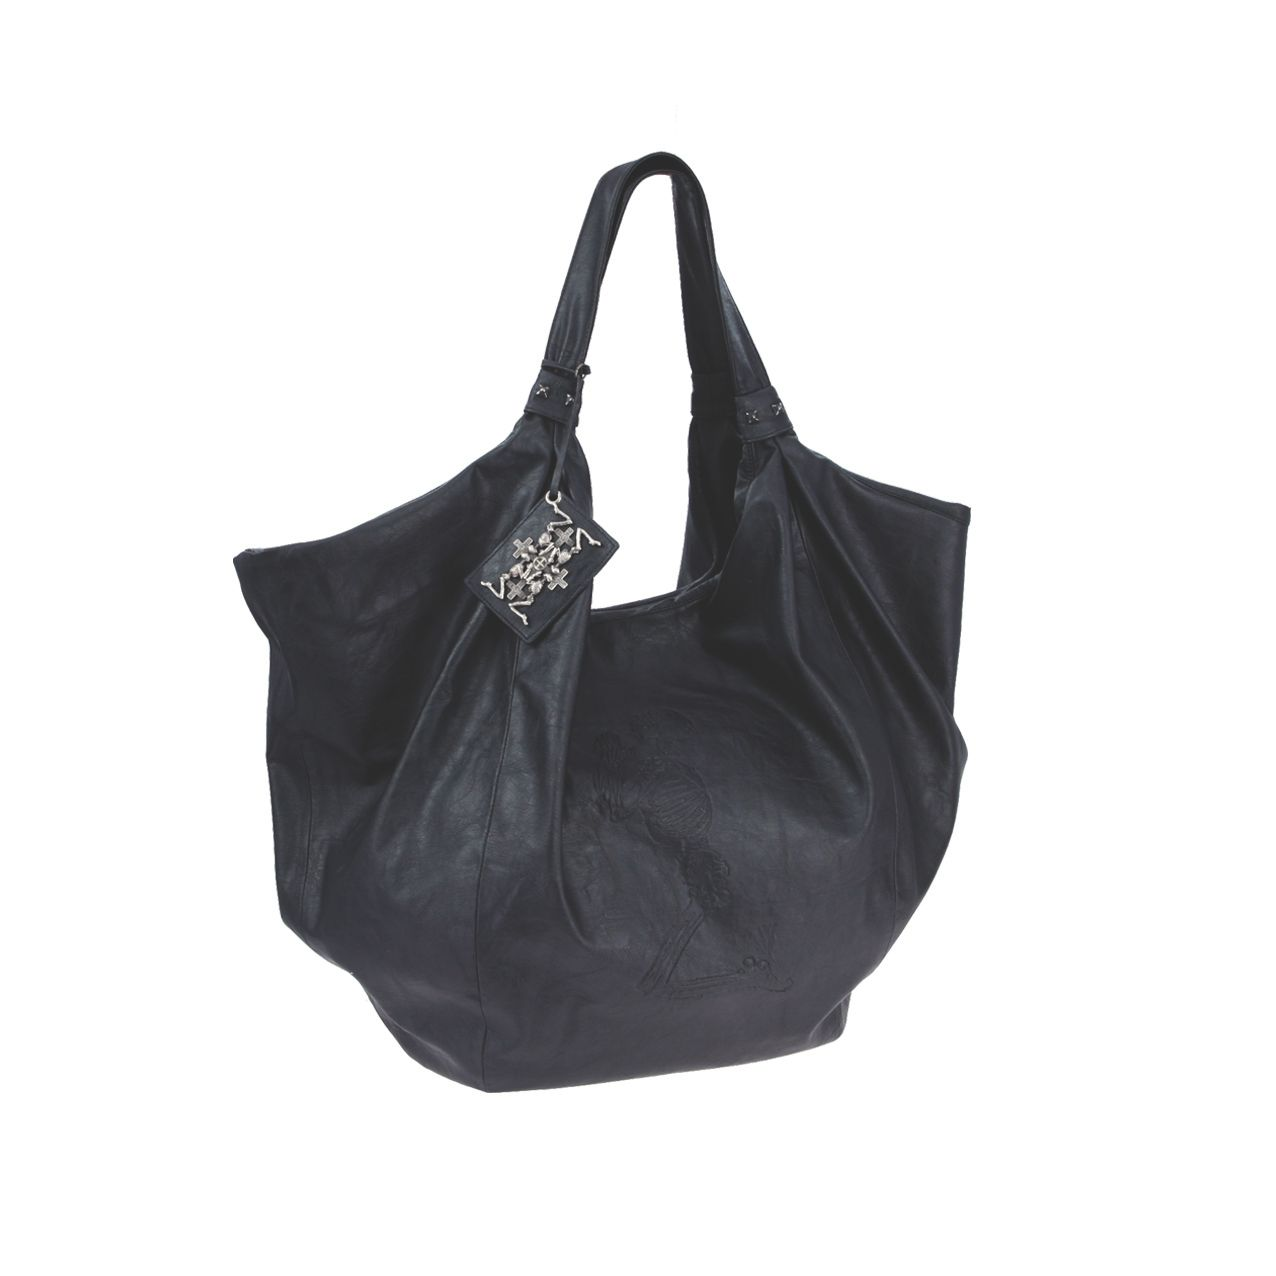 Impact slouchy shoulder bag